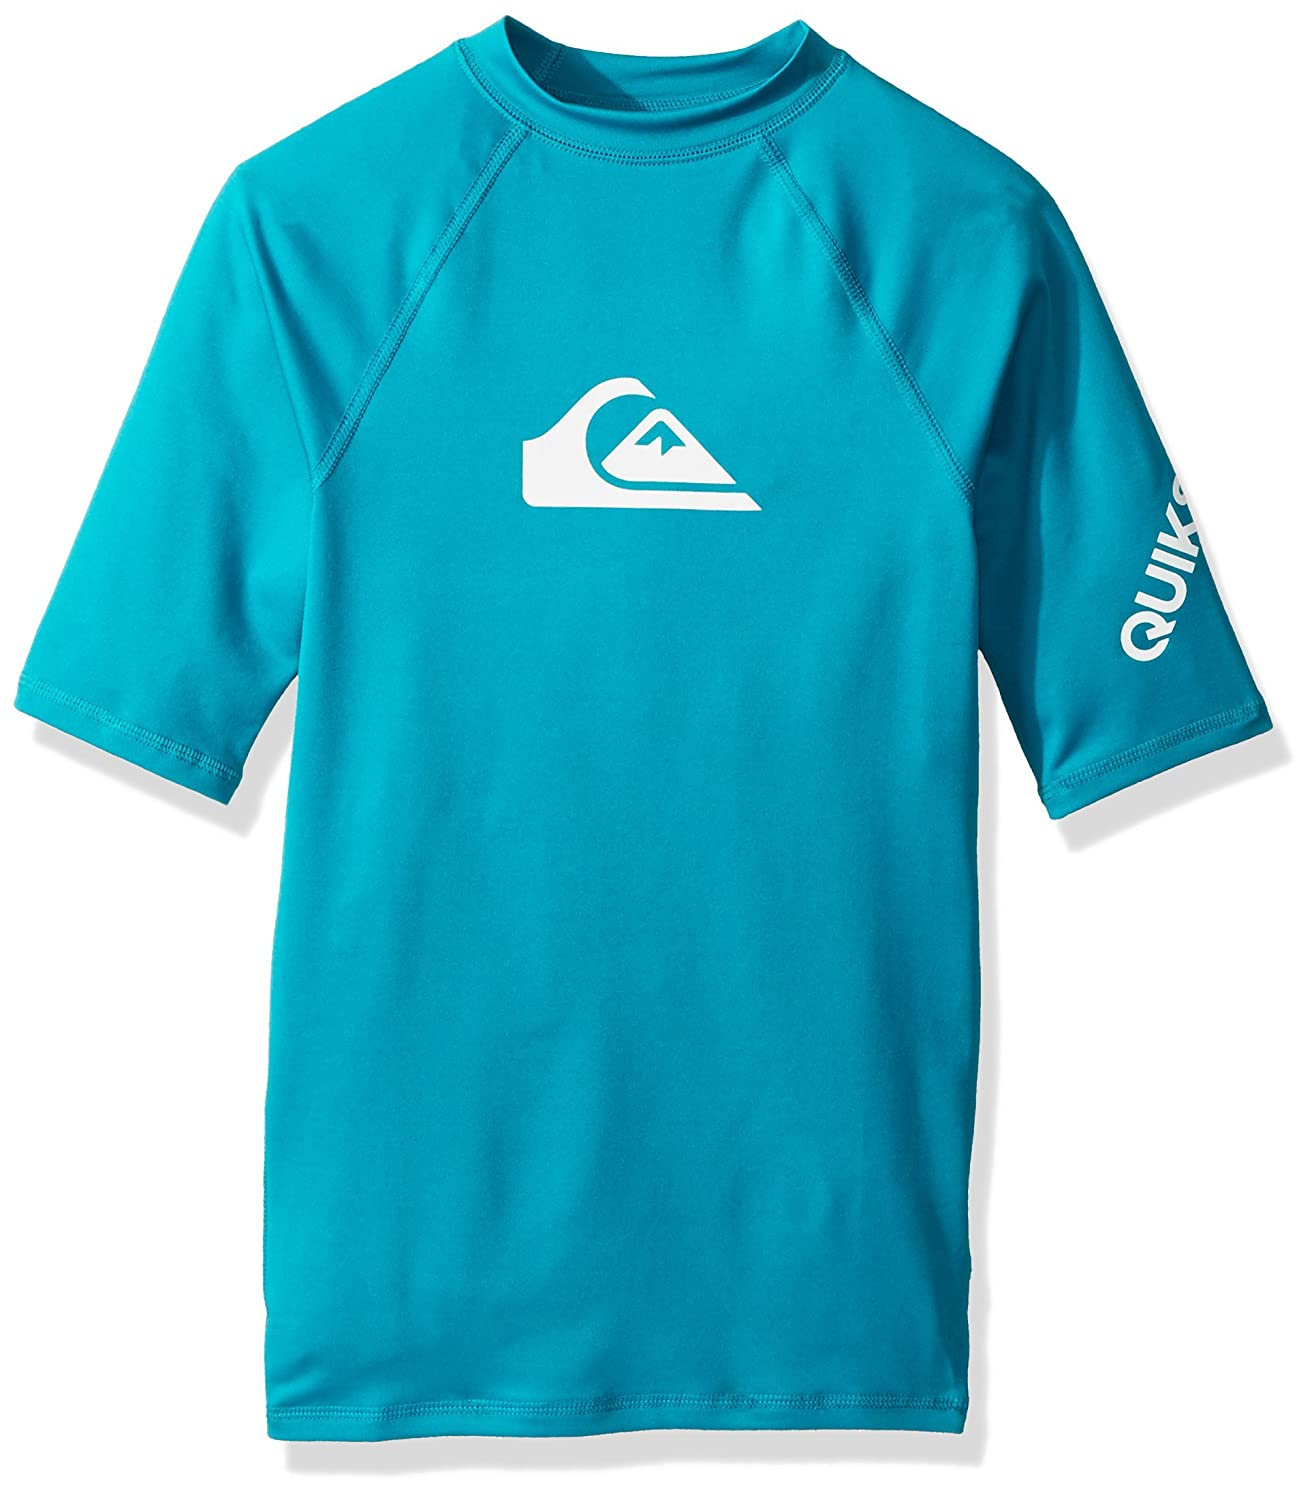 Quiksilver Time UPF 50 Youth Boys Short-Sleeve Rashguards EQBWR03060